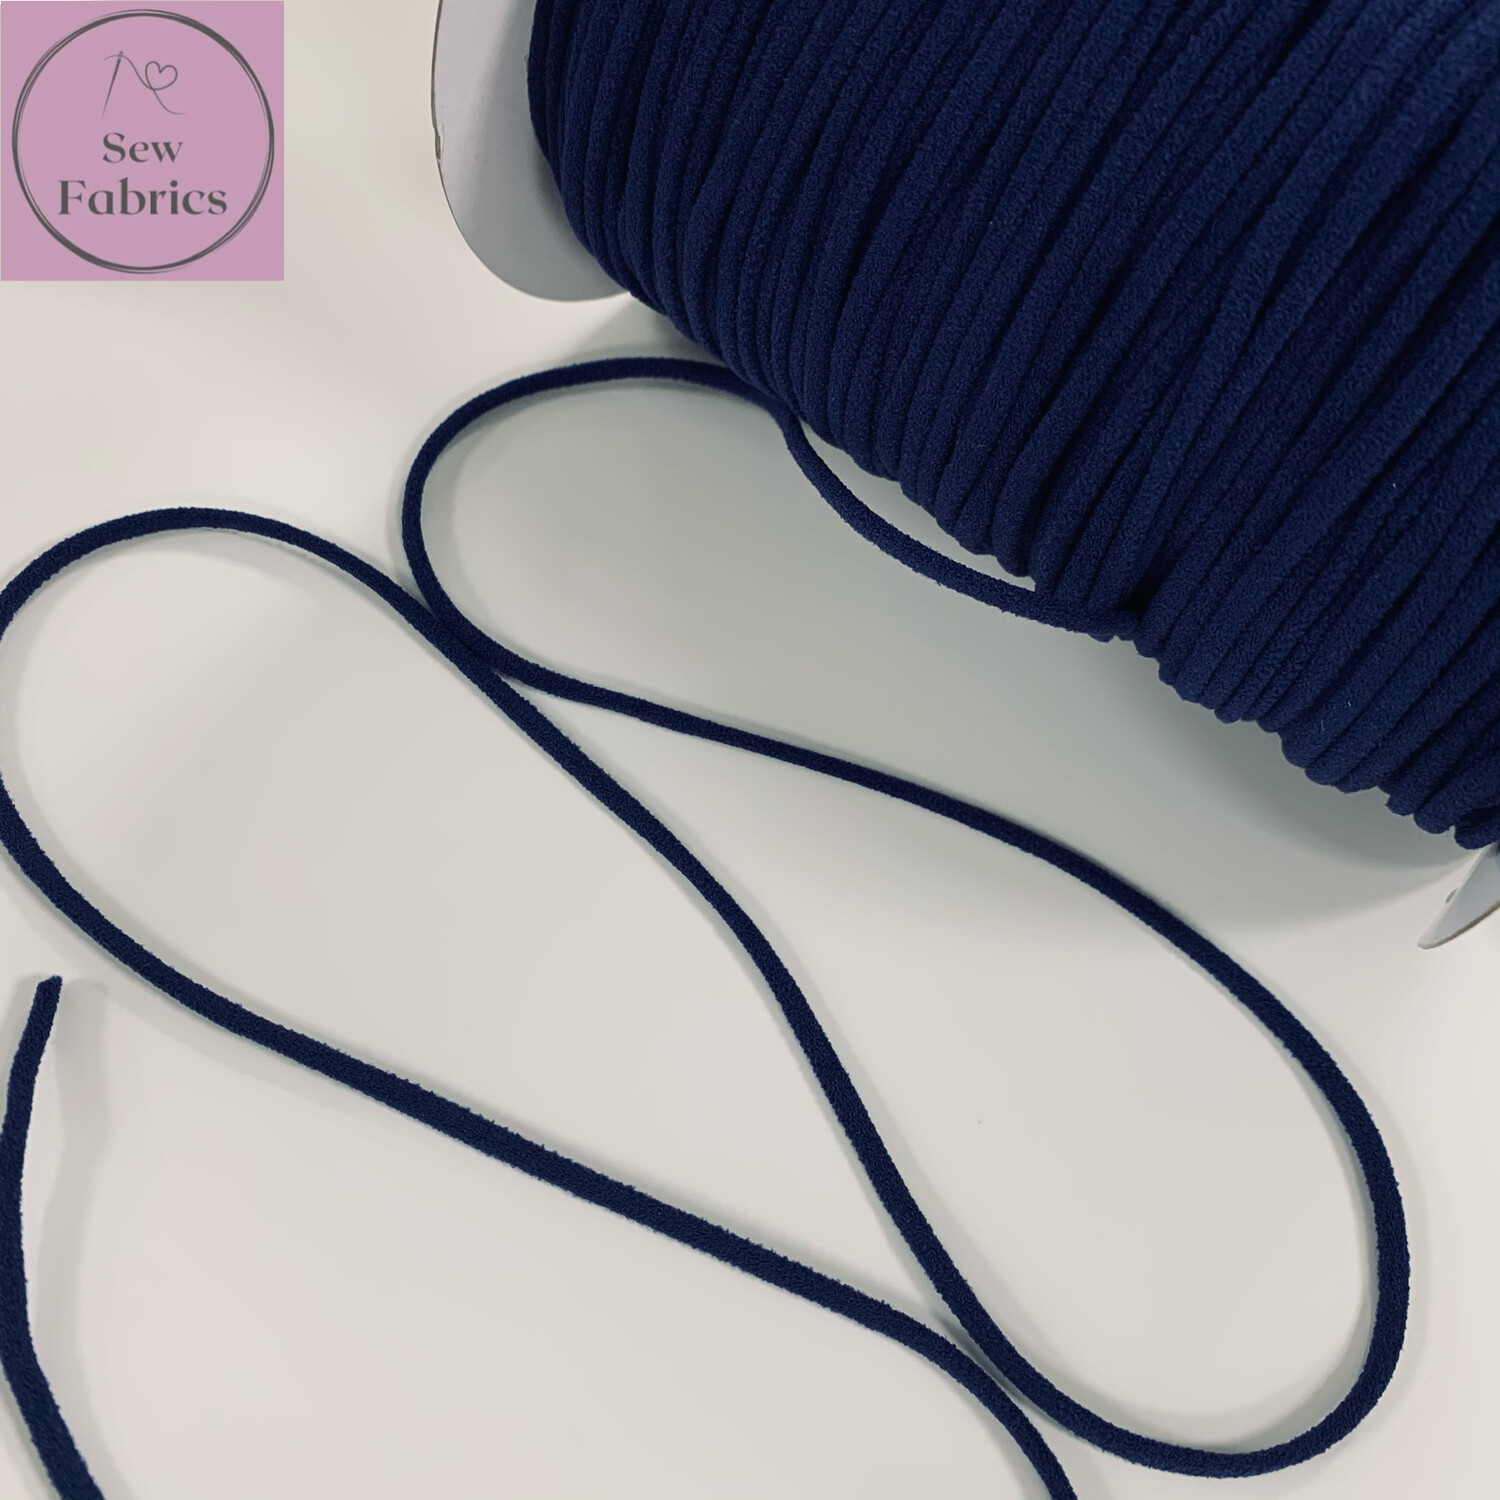 Bertie's Bows 137m / 150yd Reel of 3mm Navy Blue Soft Round Elastic, Ideal For Face Masks